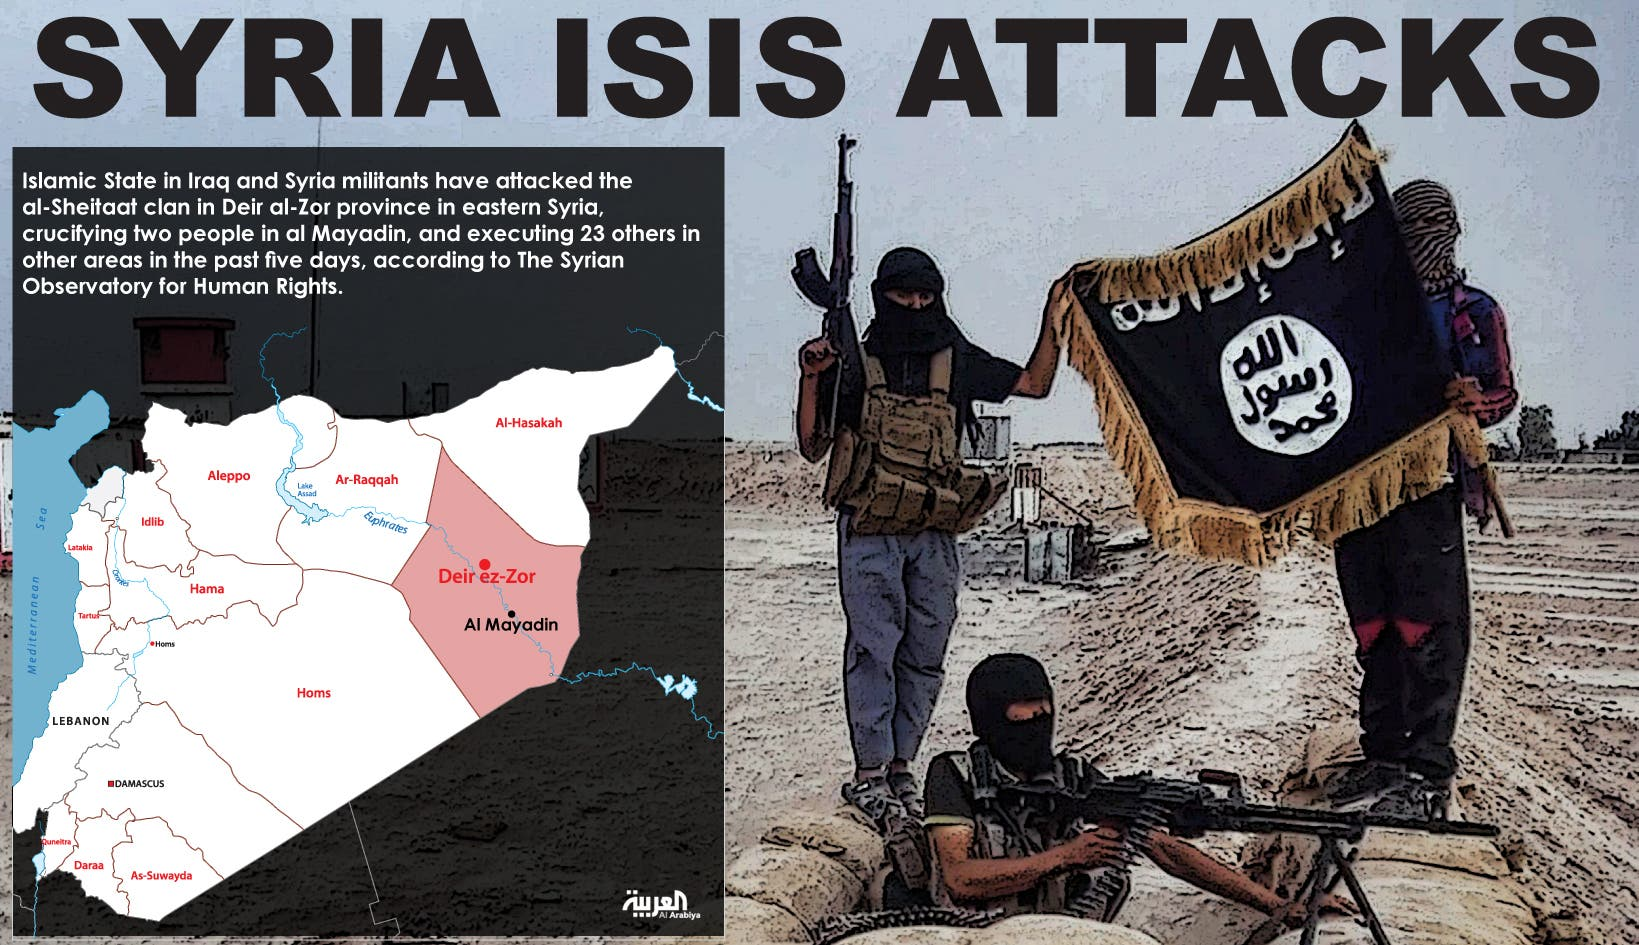 Infographic: Syris ISIS attacks